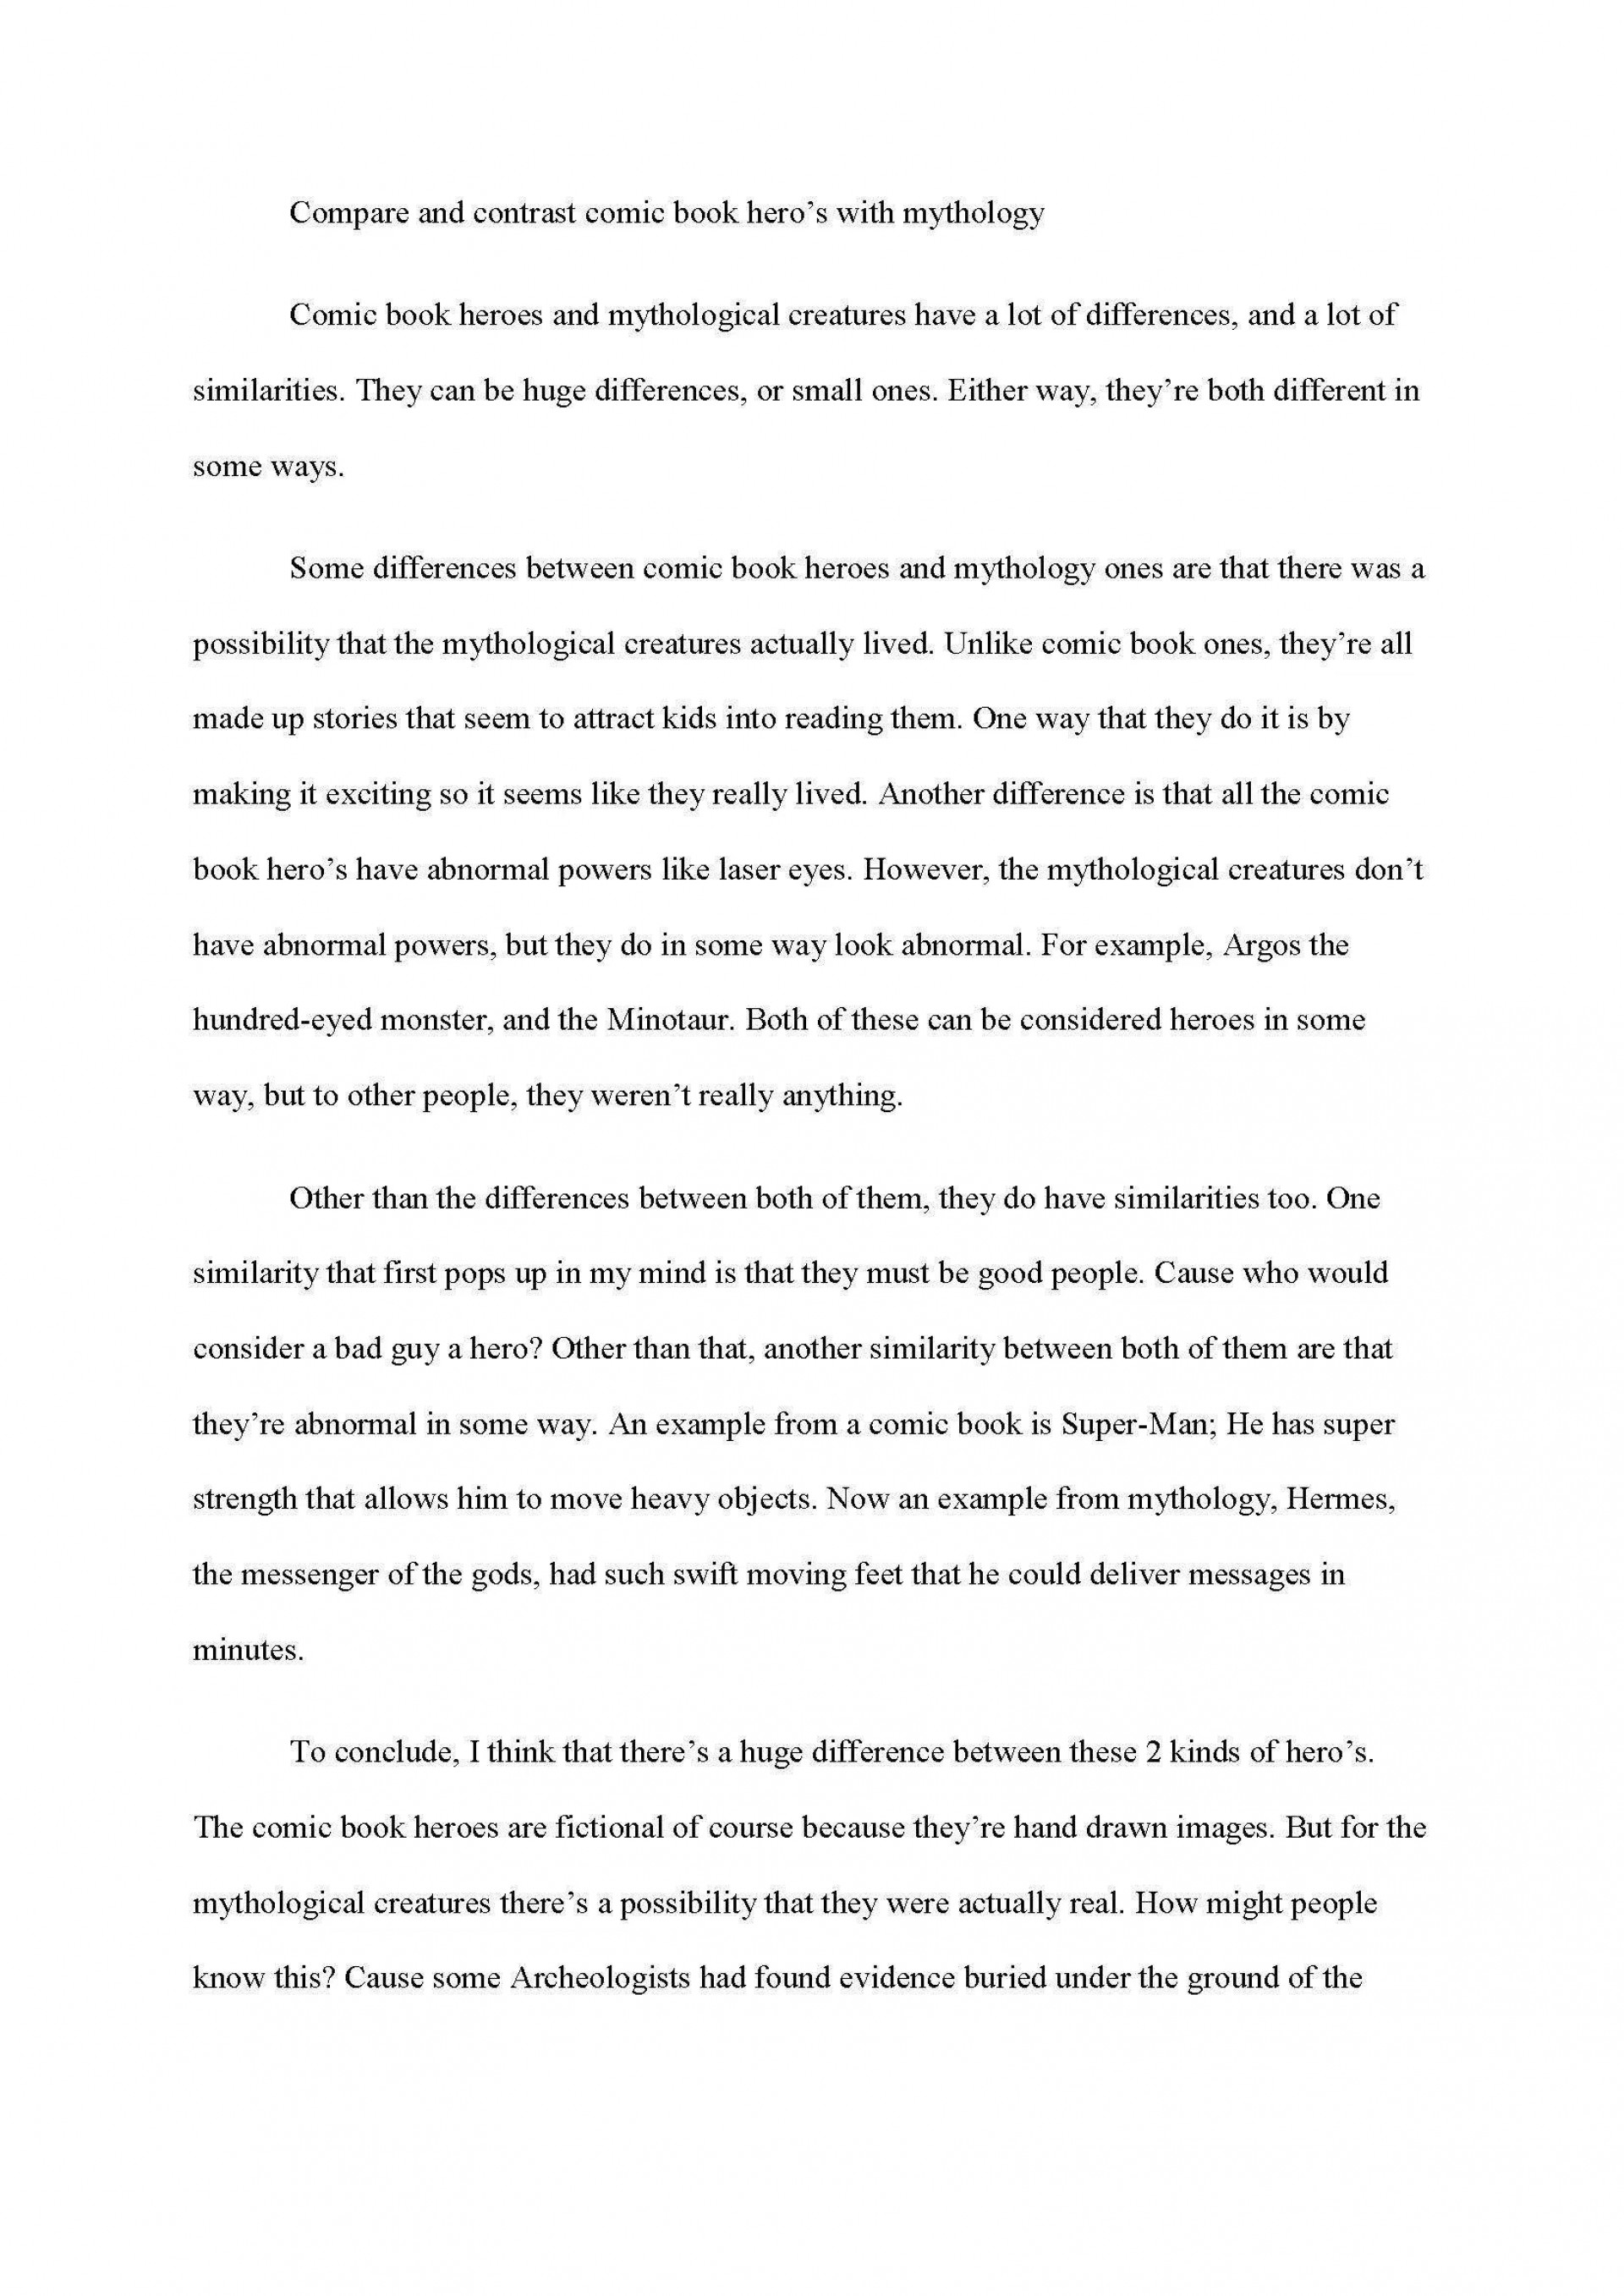 006 Excellent Compare And Contrast Essay Example College  For Topic Free Comparison1920